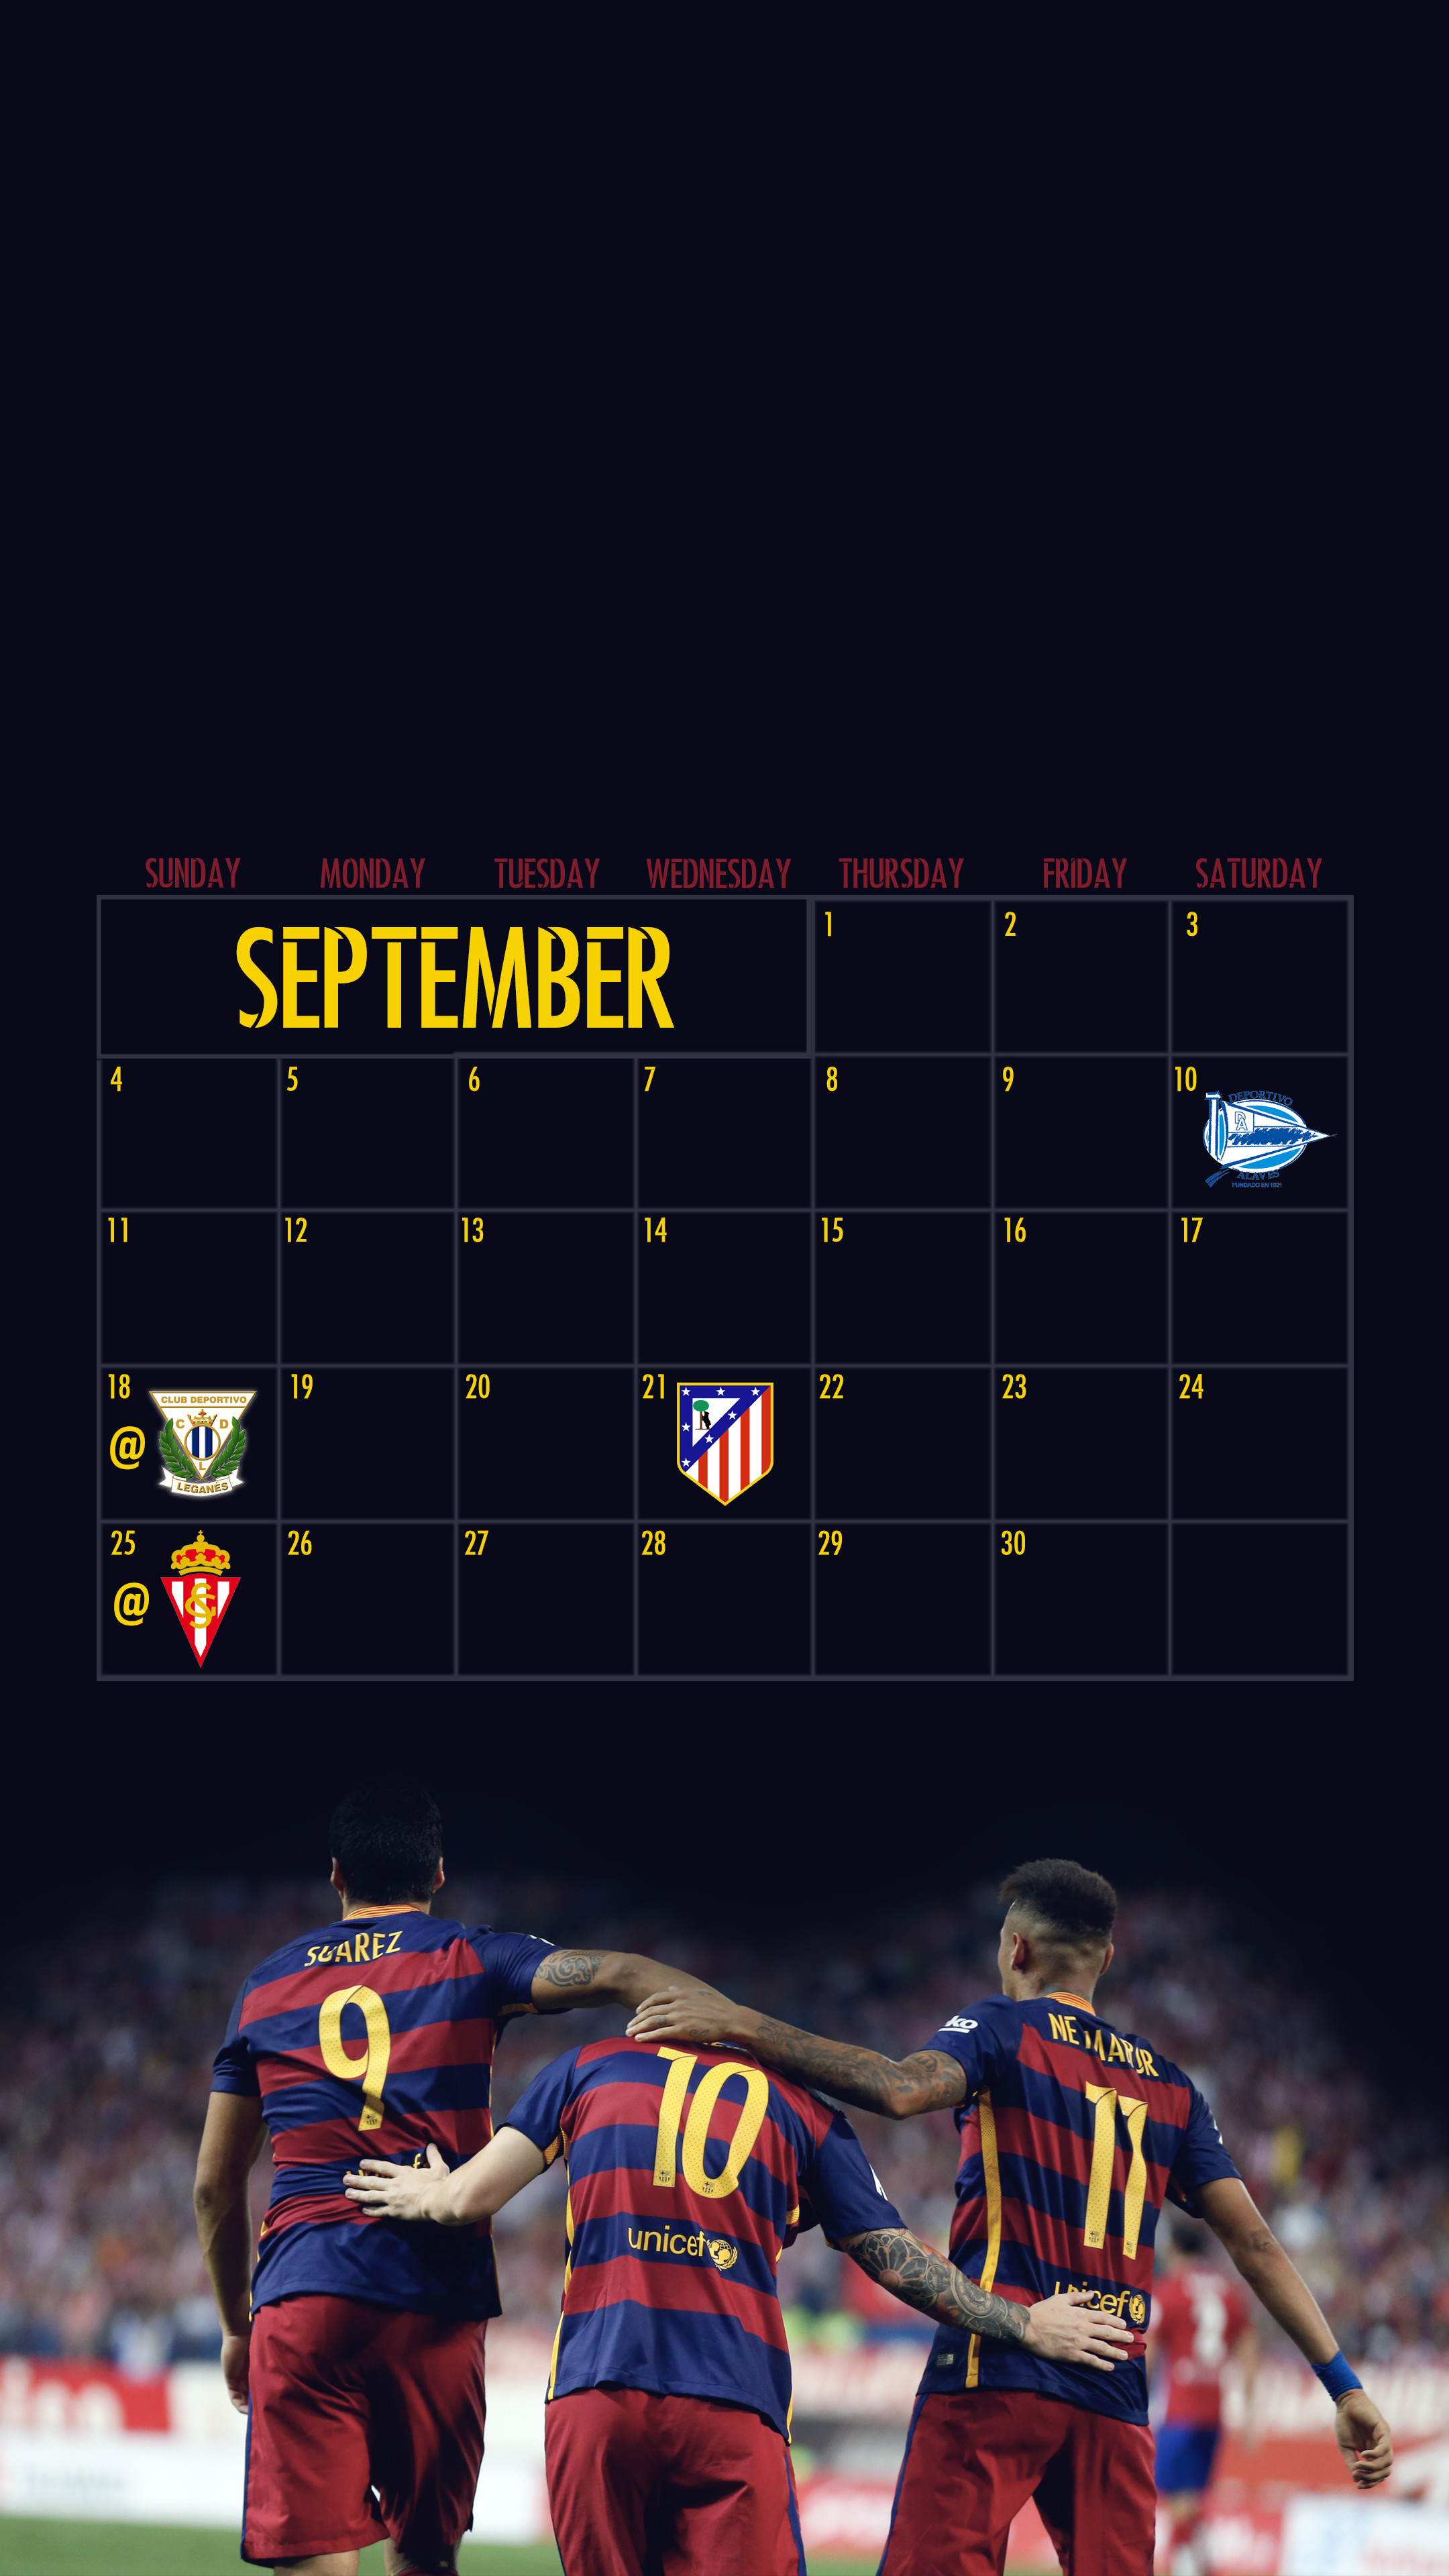 2160x3840 Made a Barca September Wallpaper. Hope you enjoy it !